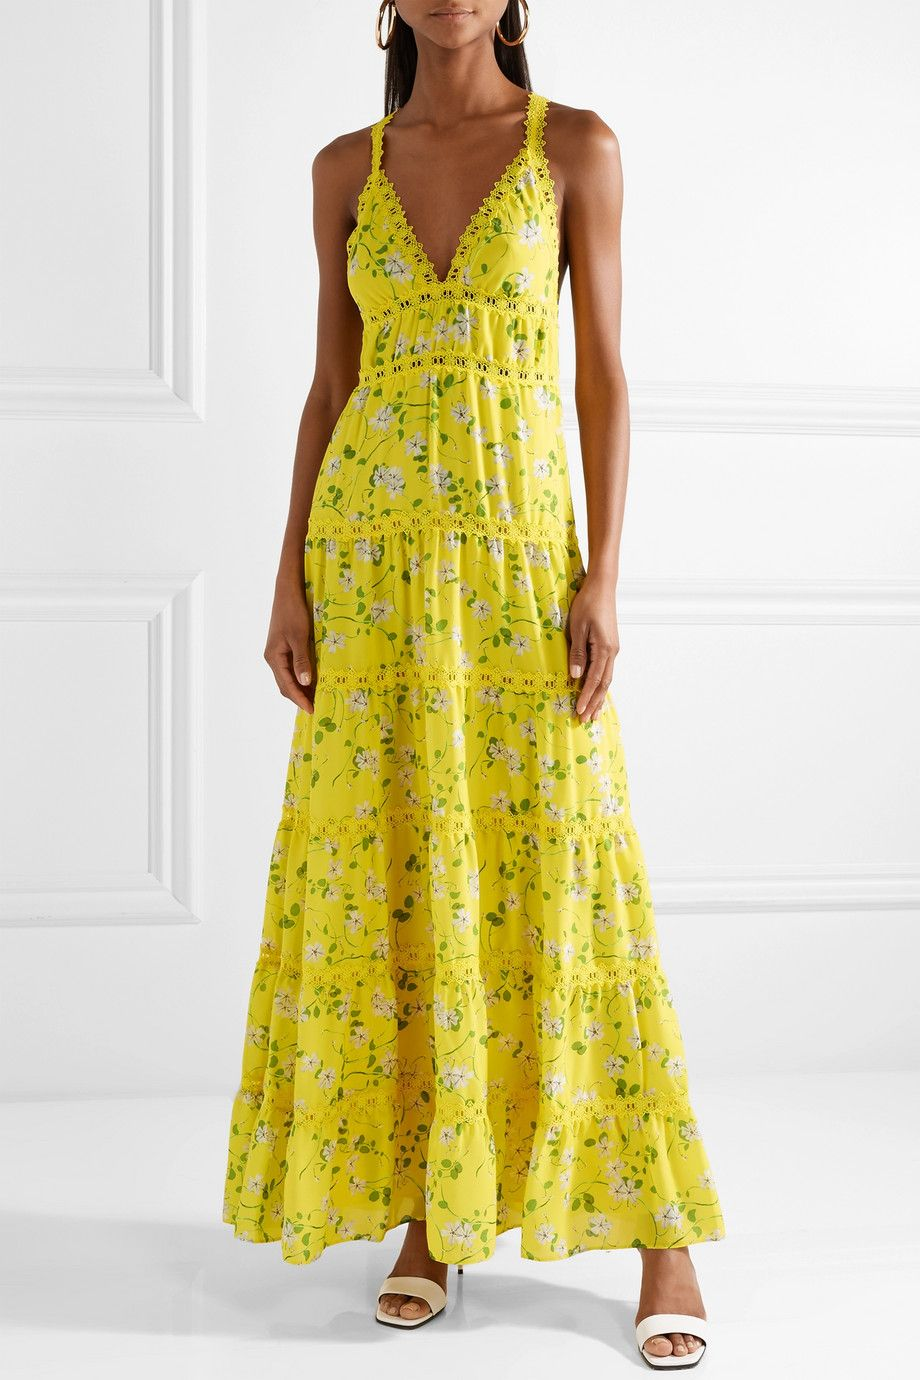 Buy Cheap Best Prices Outlet Enjoy Karolina Crochet-trimmed Floral-print Chiffon Maxi Dress - Bright yellow Alice & Olivia Websites Authentic It1LcZwV